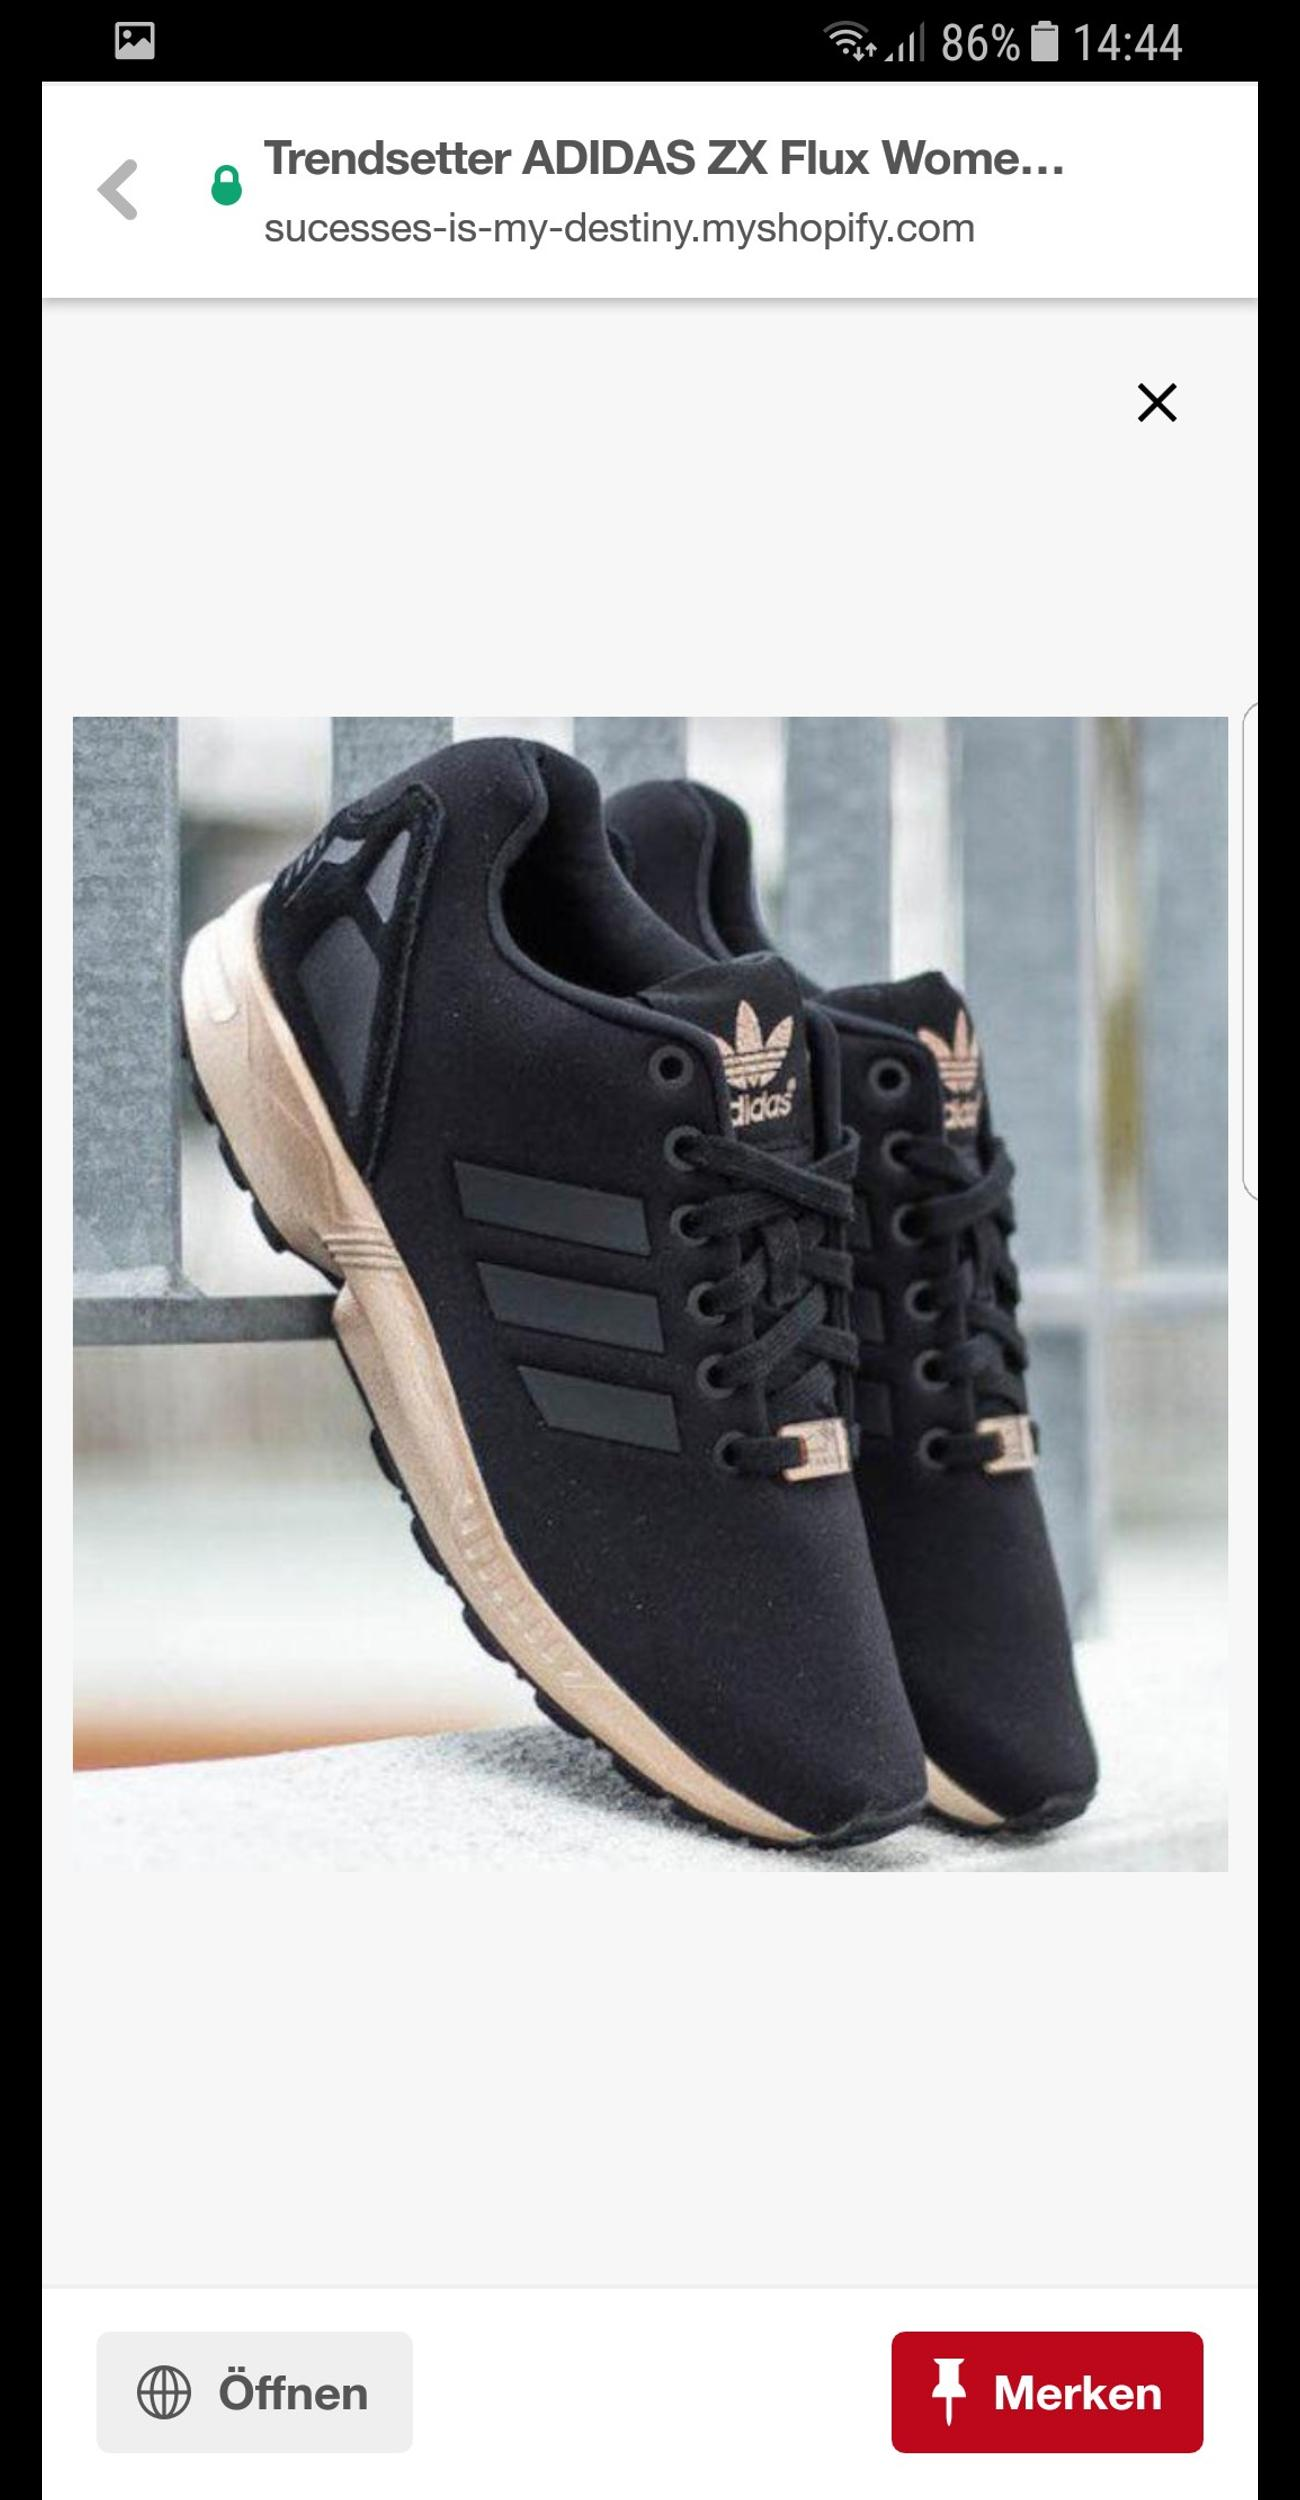 Limited ZX Flux Edt Edt Adidas Limited Adidas ZX Flux WdxrCBoe